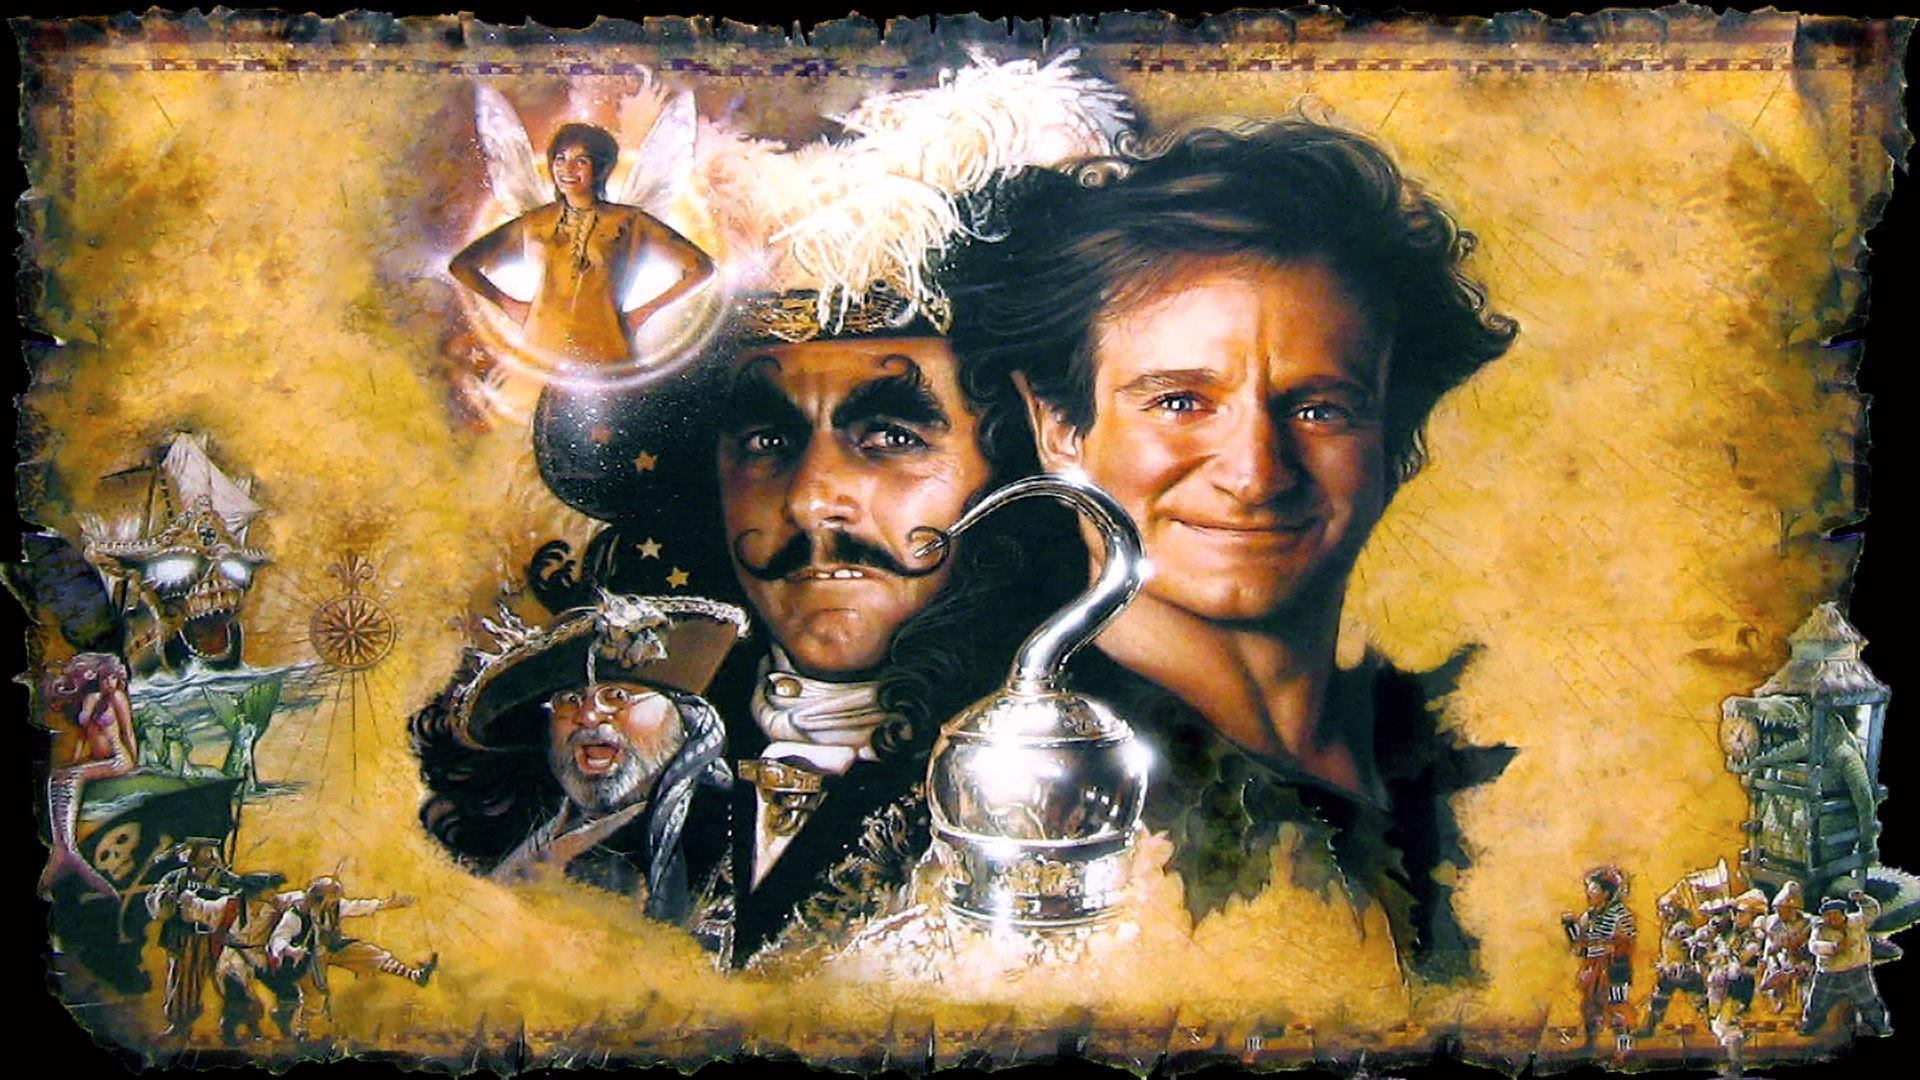 hook robin williams - Top Hd Wallpapers